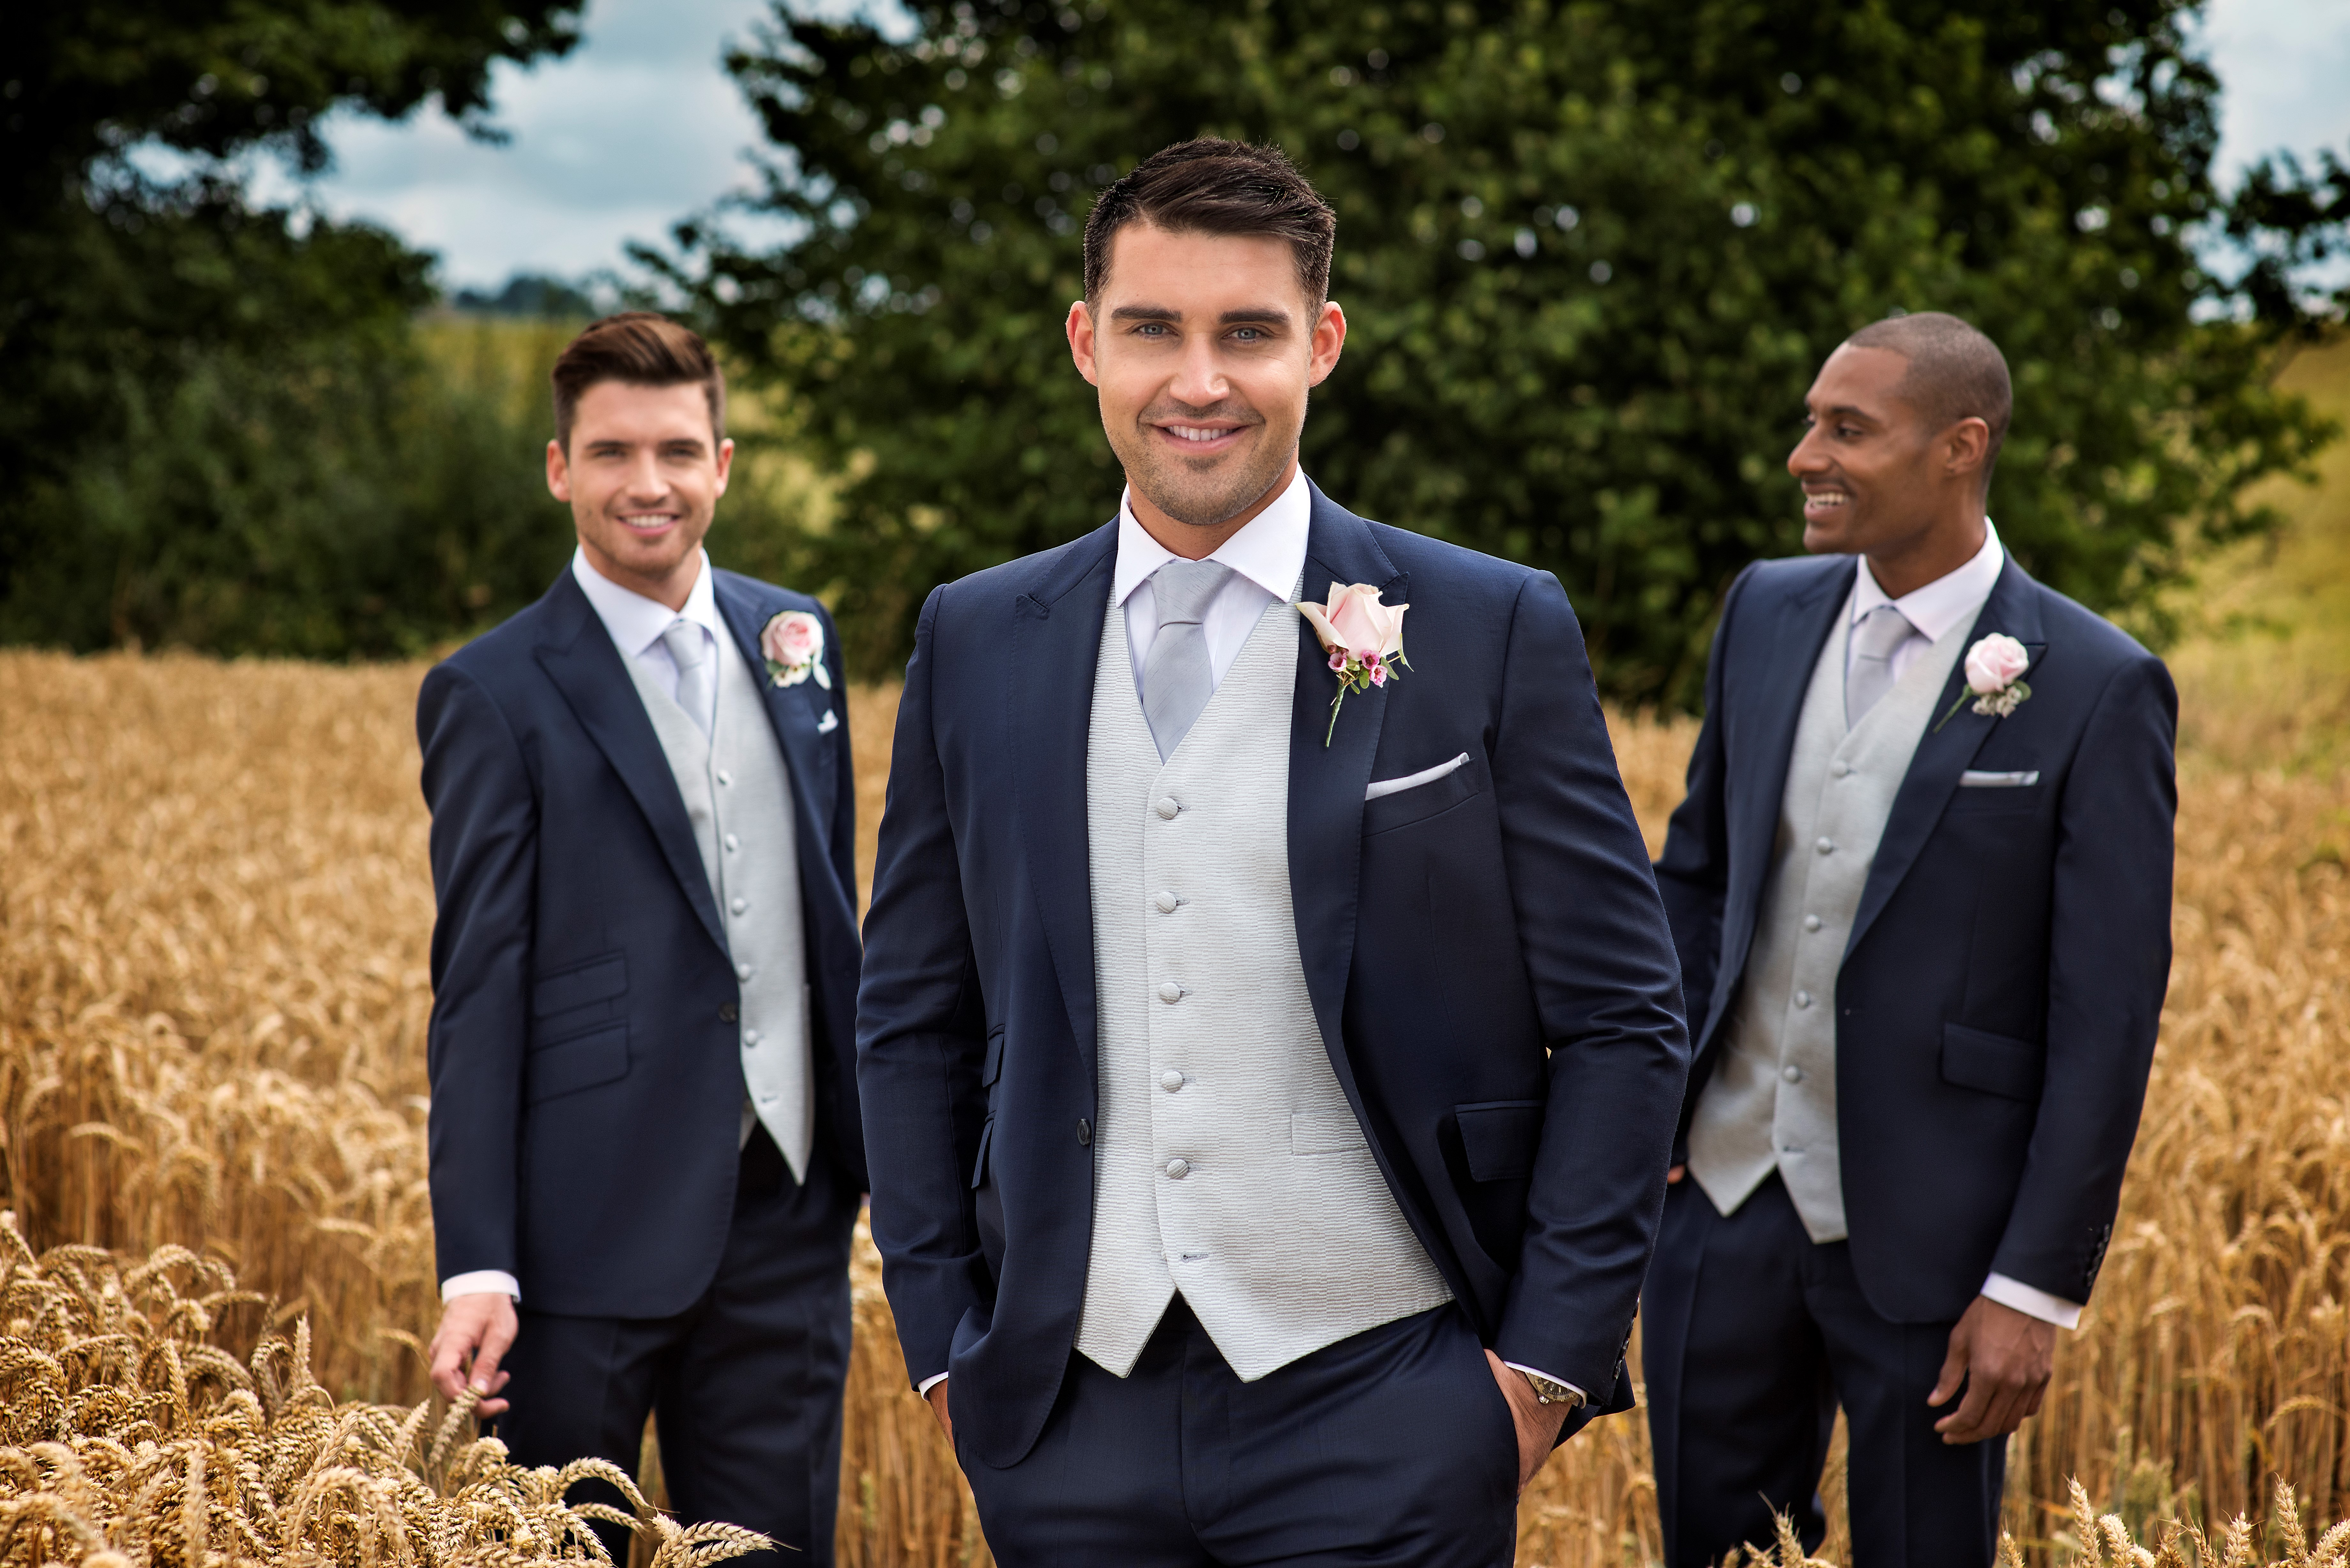 Suits & Formal Wear to Hire from Kilts 4 U